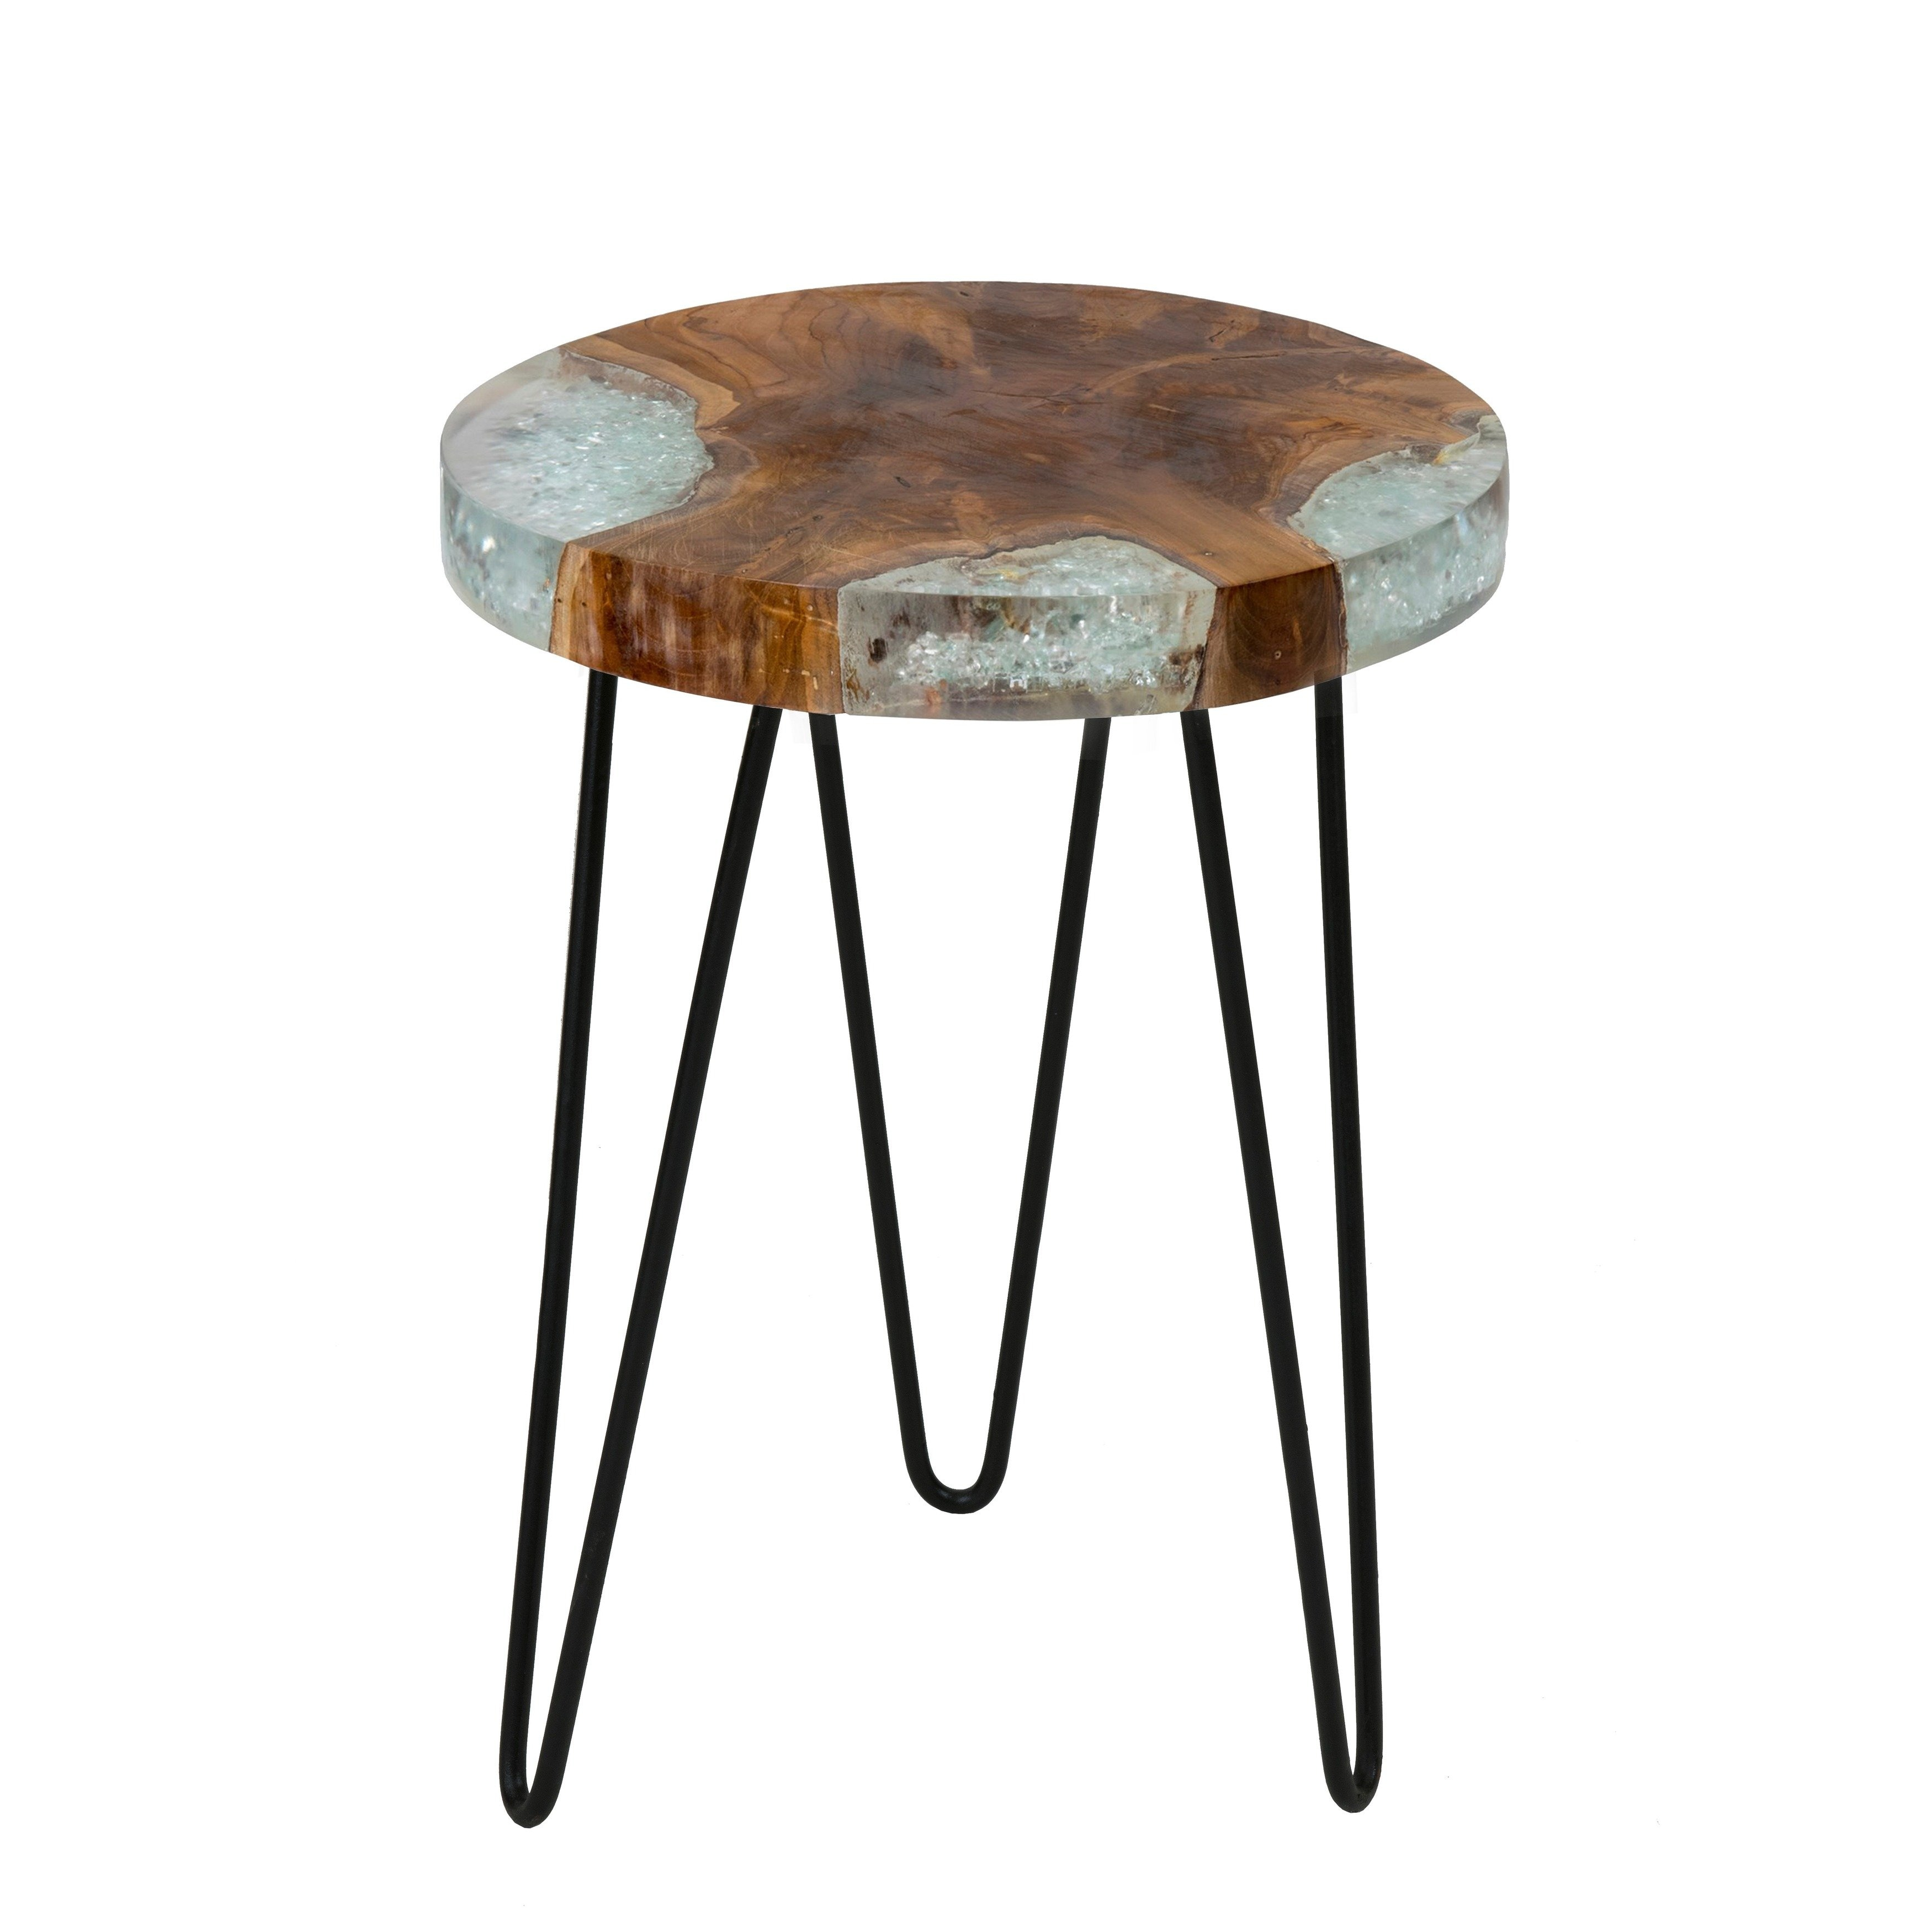 east main kakalina side table small icy wood with iron legs marble top accent round glass nesting tables frame floor length mirror touch lamp solid coffee drawers cast aluminum